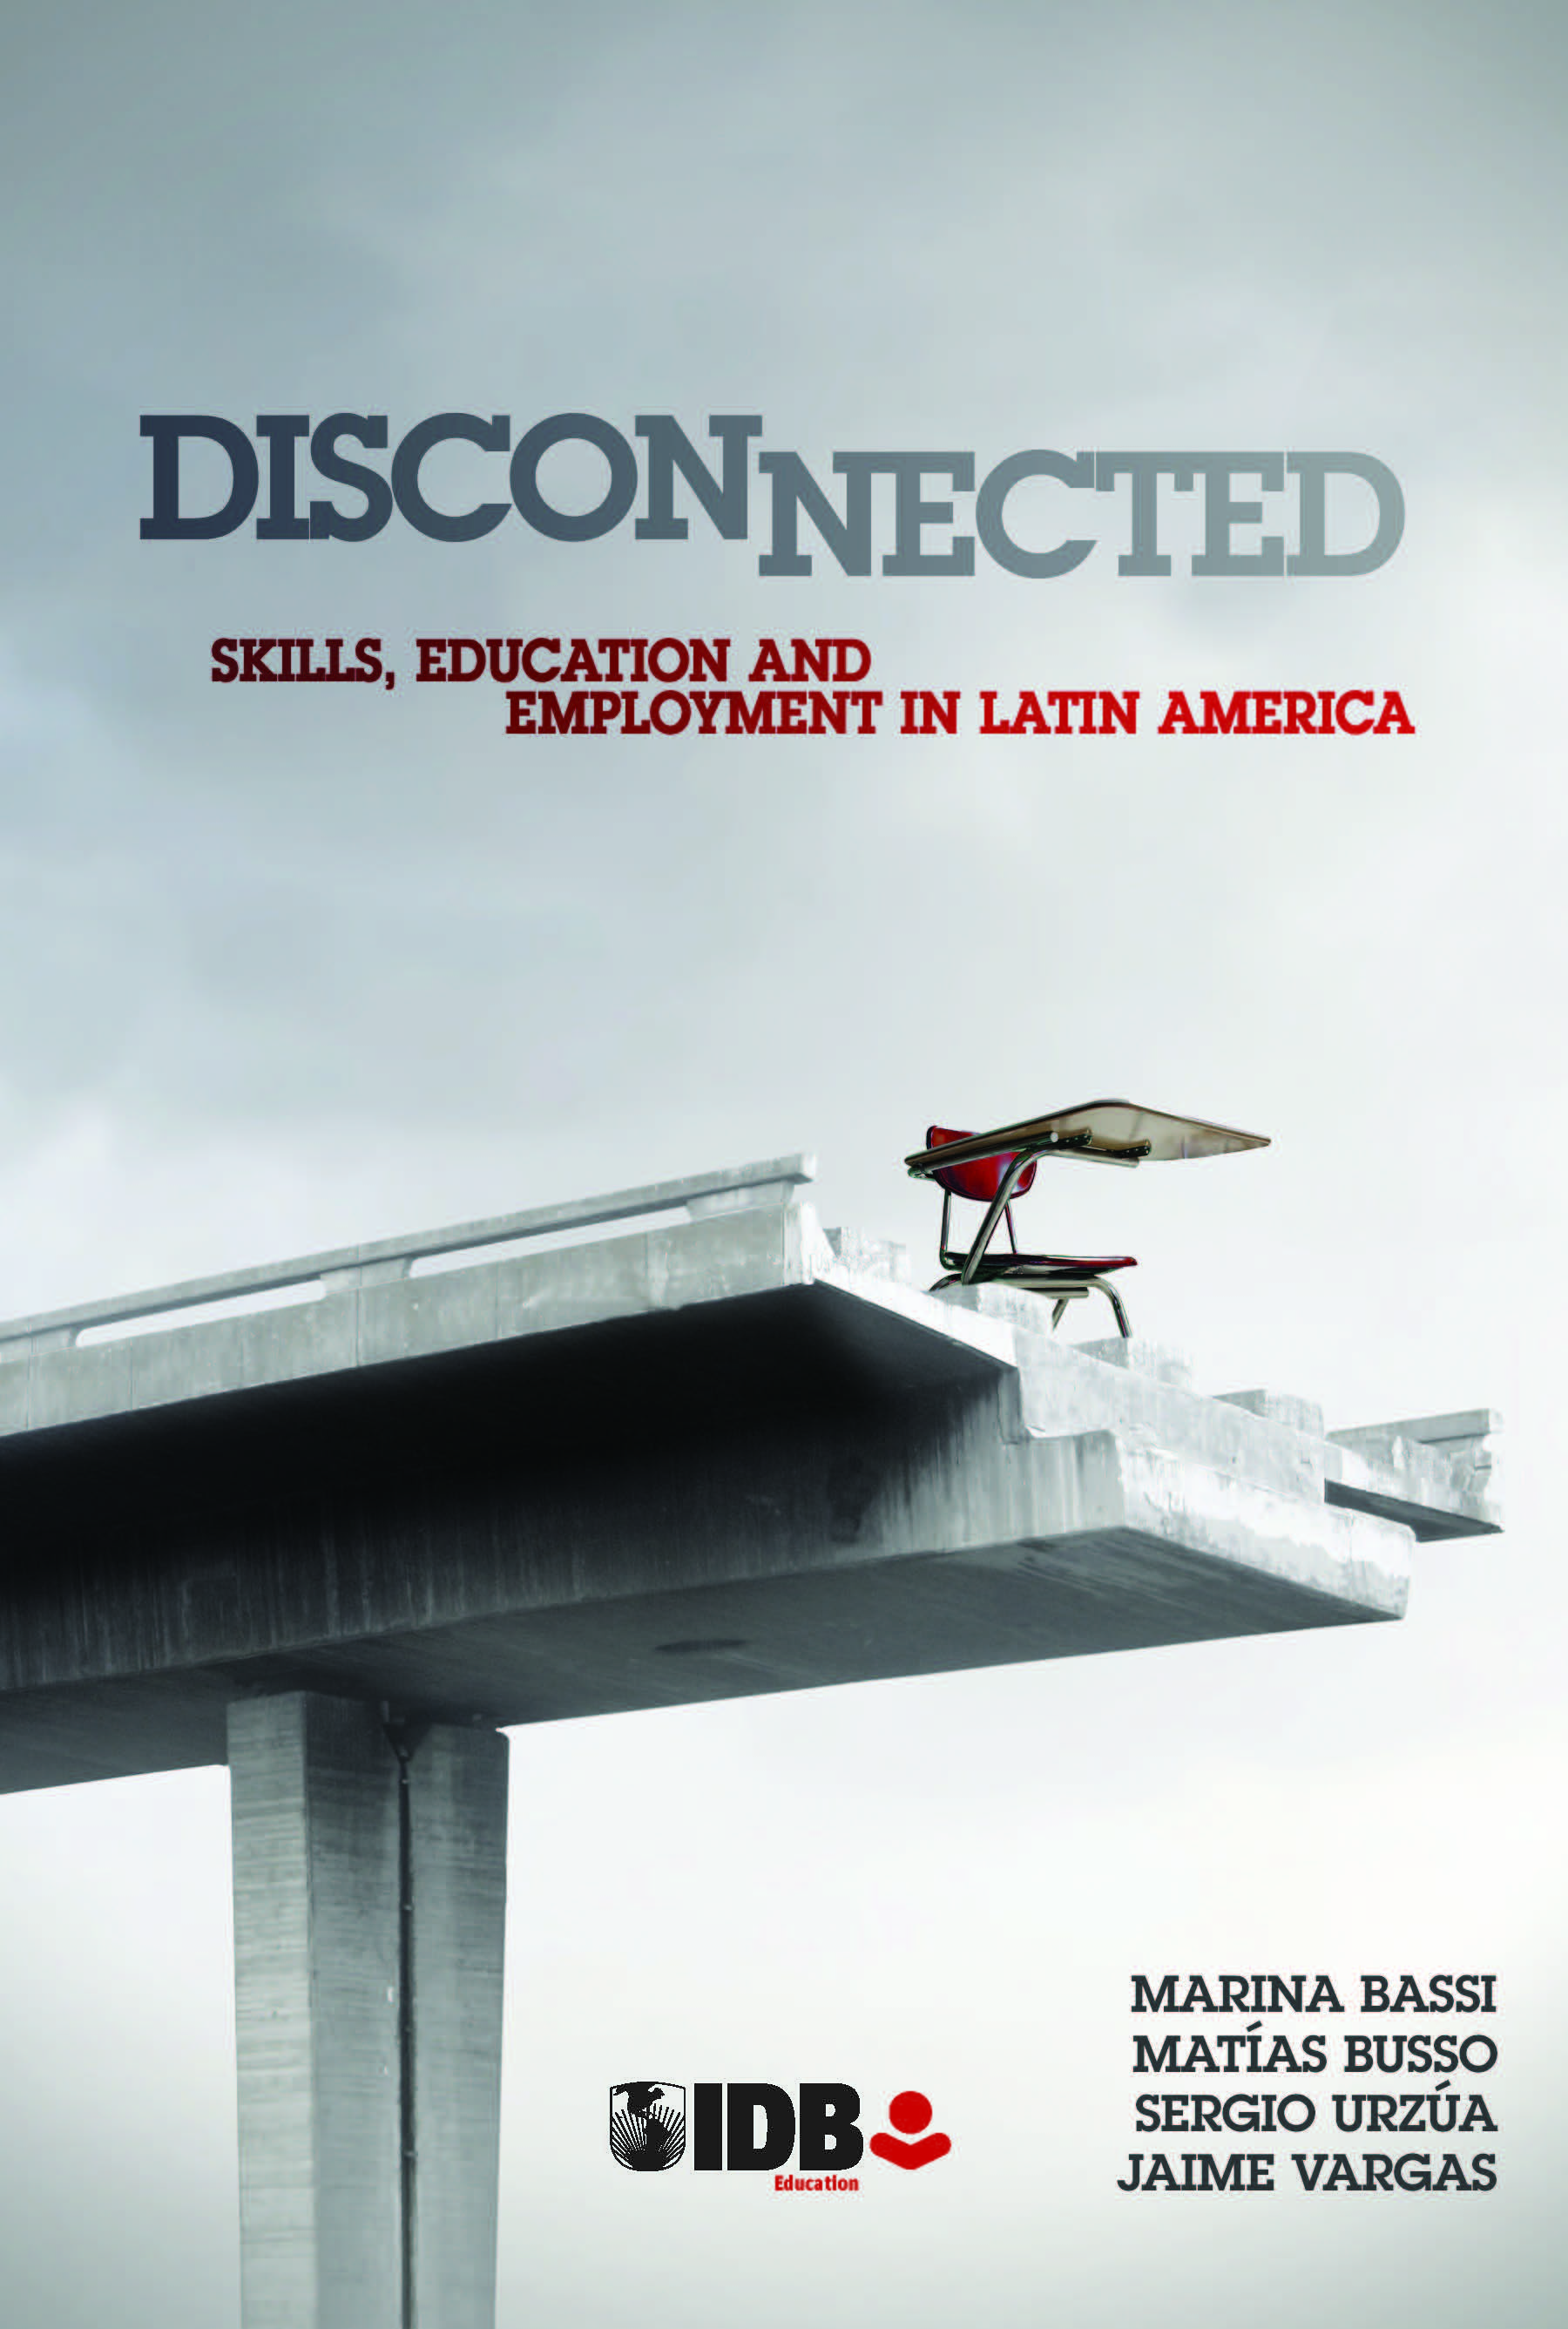 Disconnected-Skills-Education-nd-Employment-in-Latin-America 1.jpg